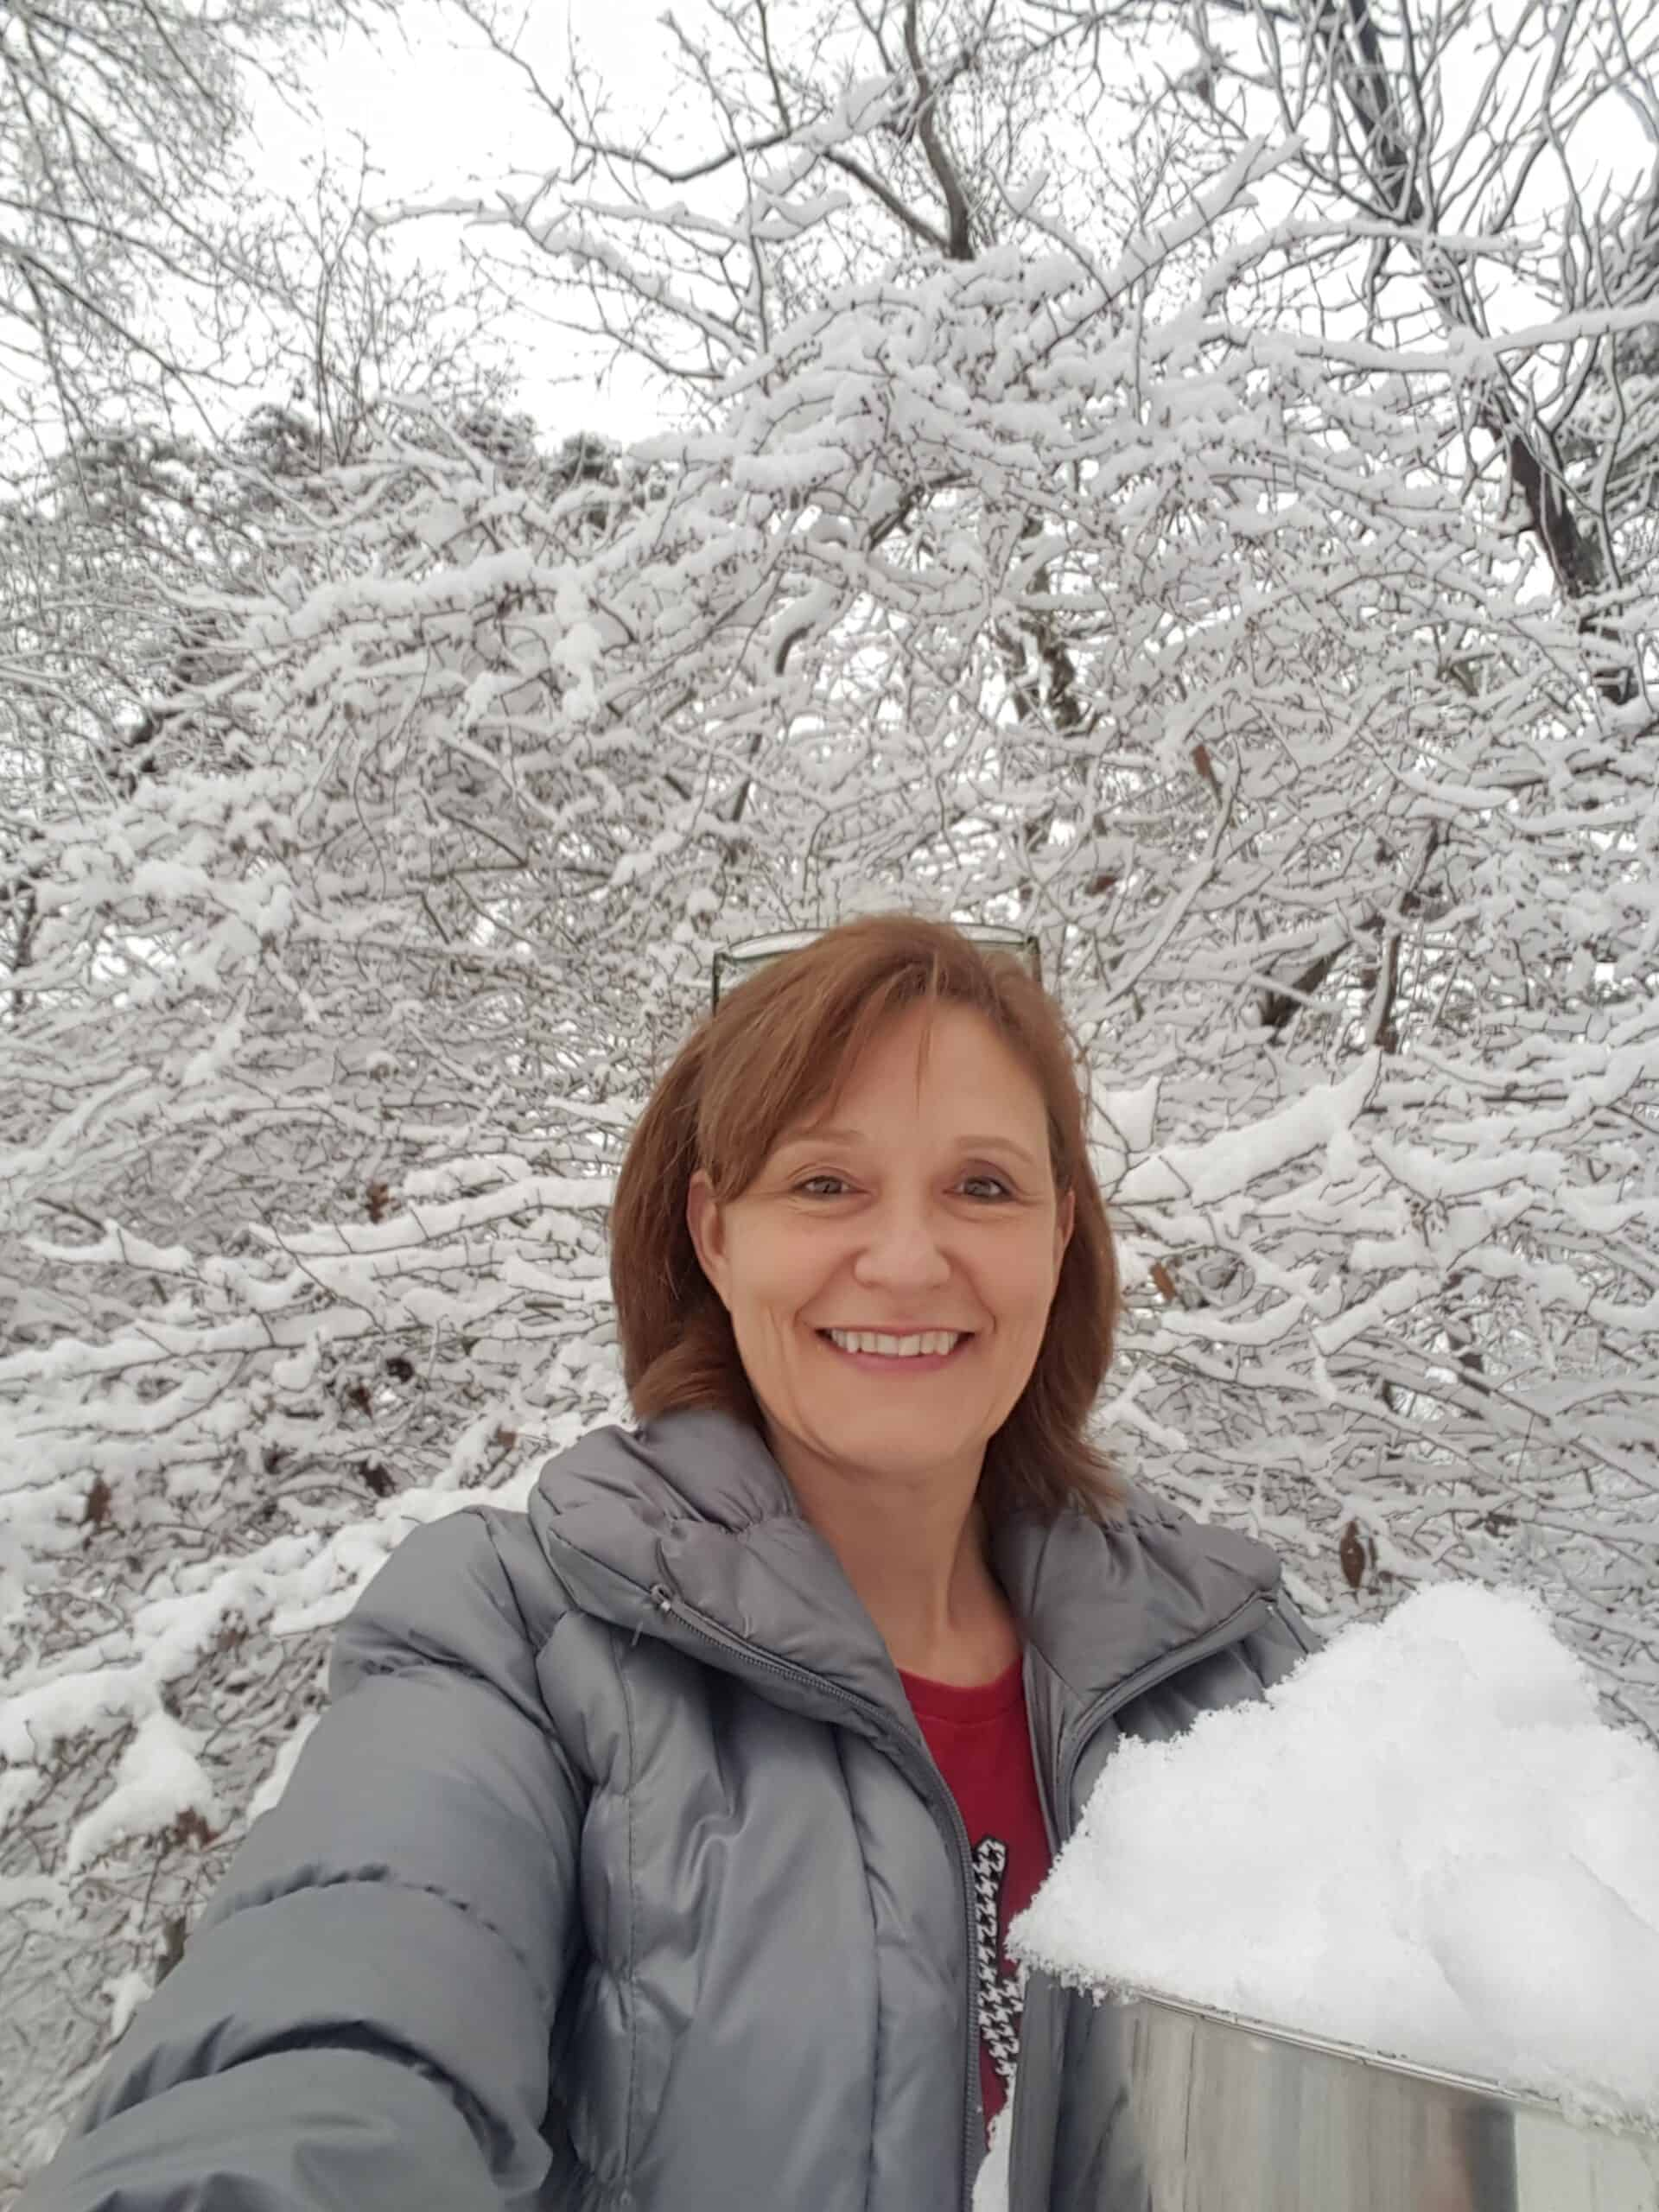 Woman holding bowl of snow